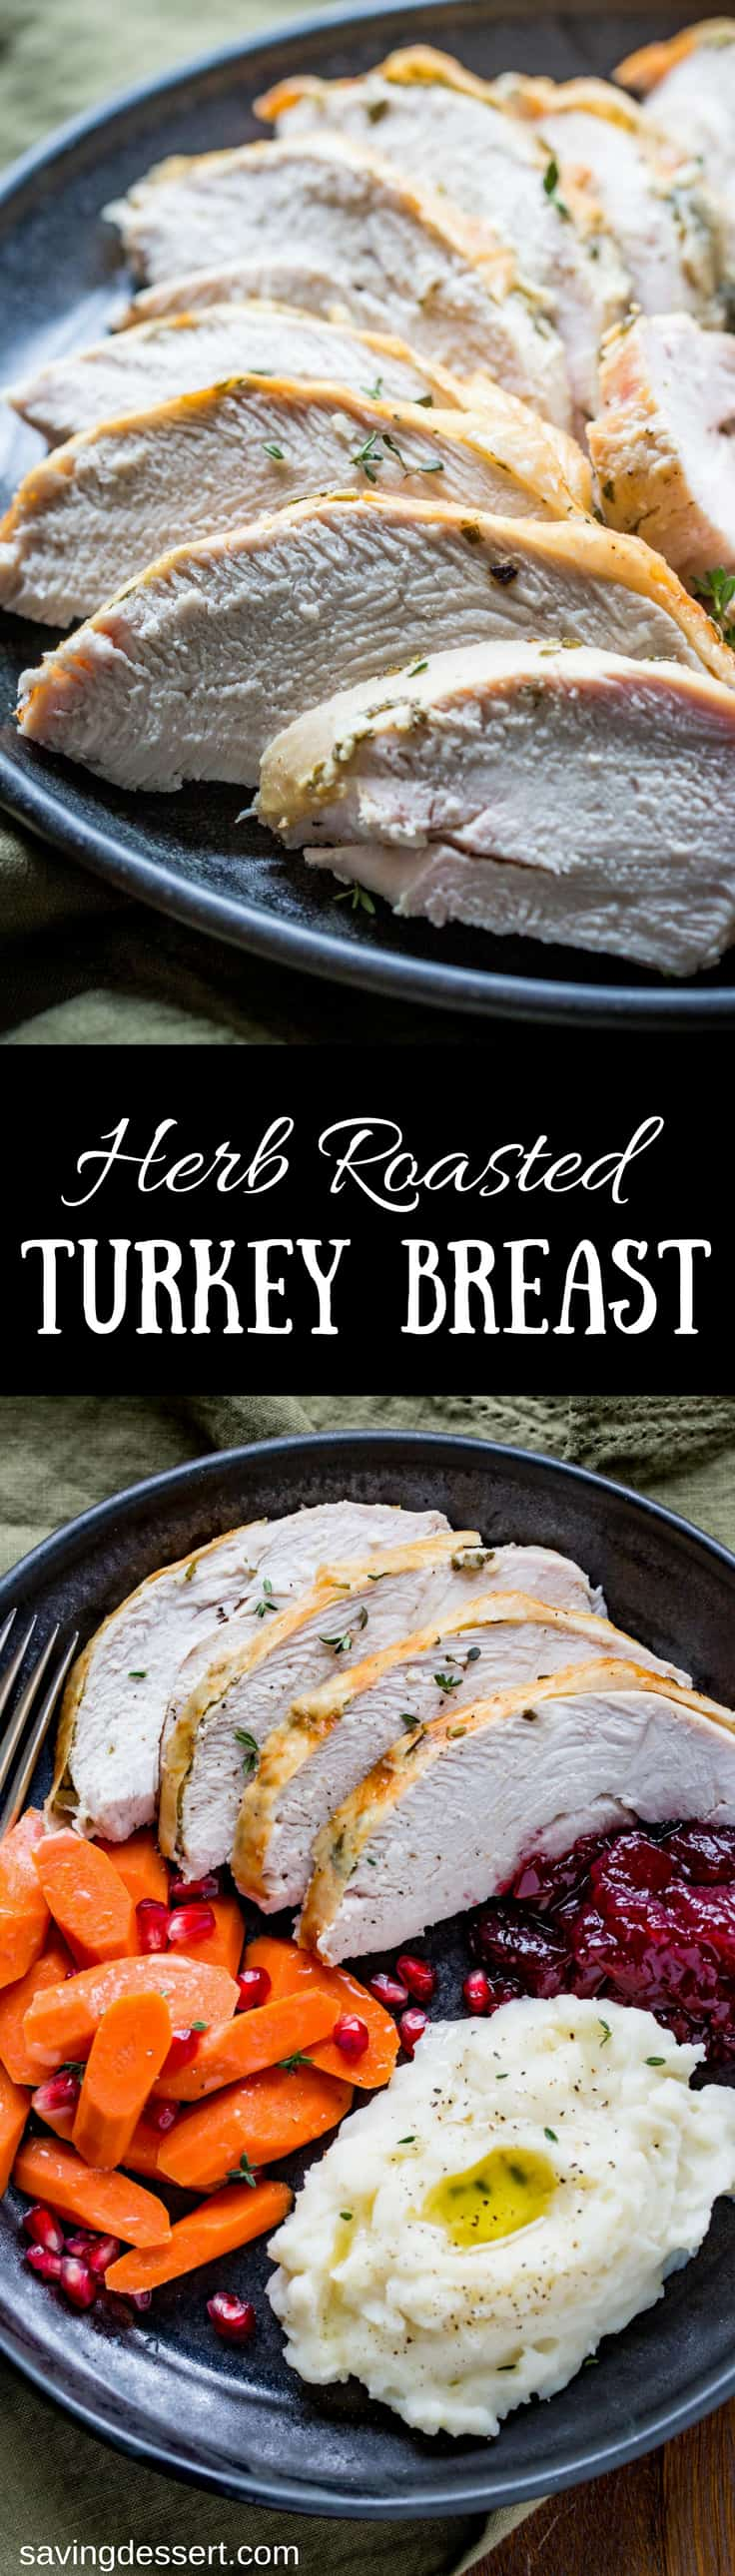 Herb Roasted Turkey Breast ~  an easy, foolproof method for a well seasoned, tender and juicy turkey breast! www.savingdessert.com #savingroomfordessert #thanksgiving #turkey #turkeybreast #herbroastedturkey